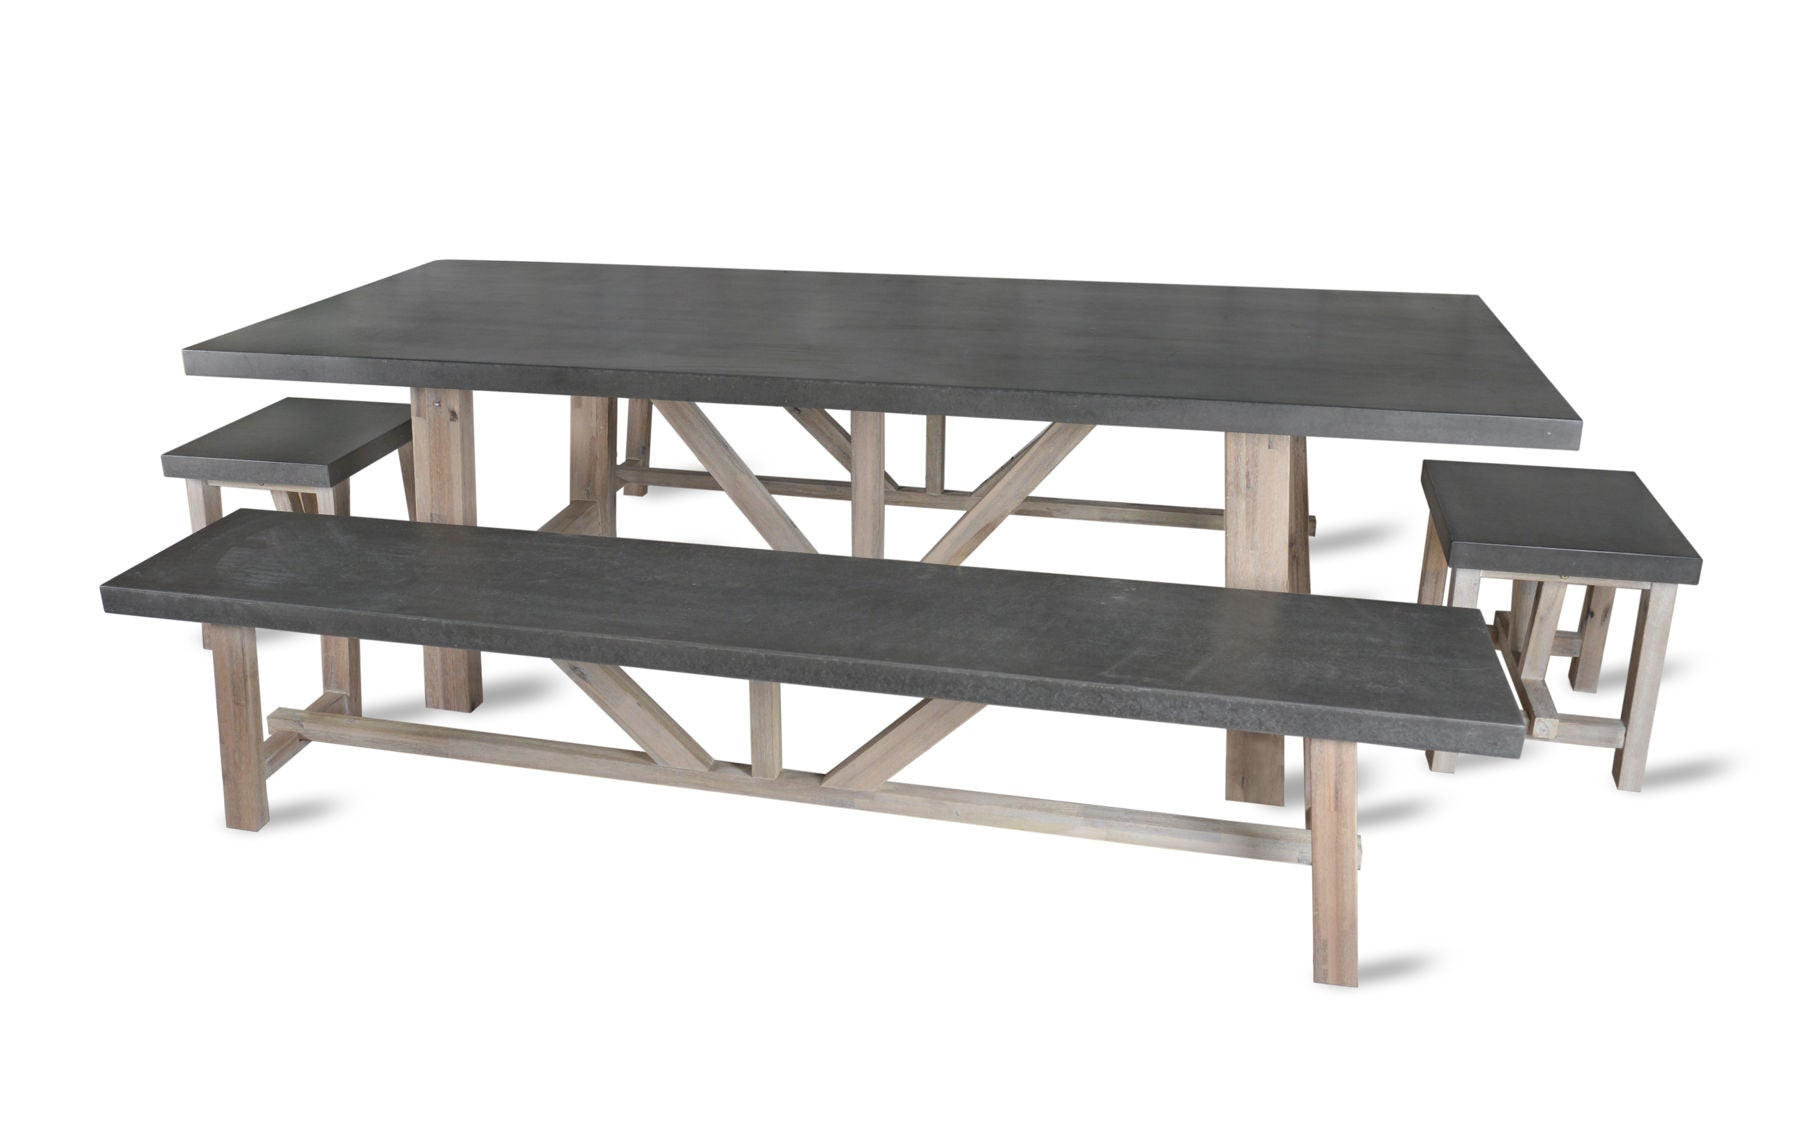 Terrific Charlbury Large Table And Bench Set Gamerscity Chair Design For Home Gamerscityorg